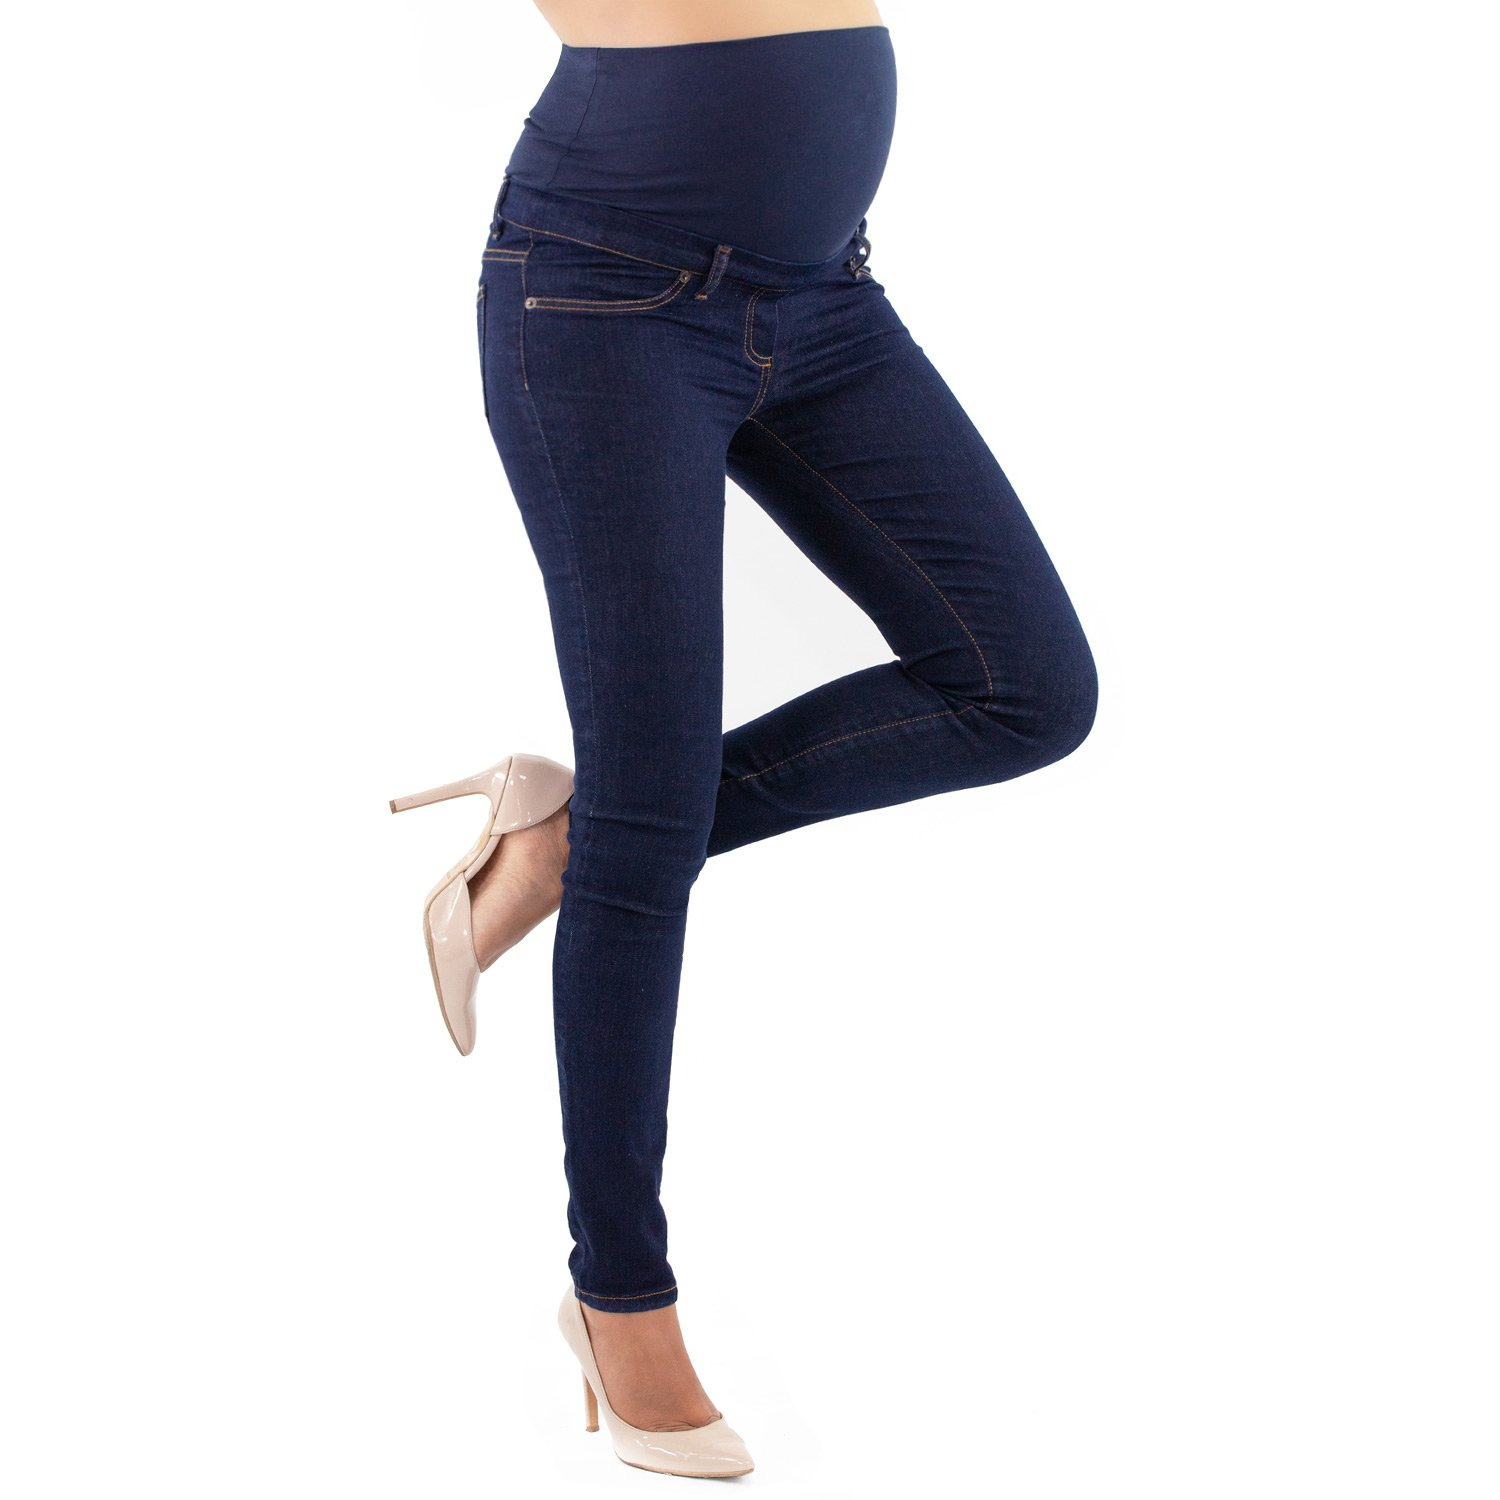 Milano Basic, Maternity Jeans Basic Style, Classic Denim - Made in Italy (XXXL)